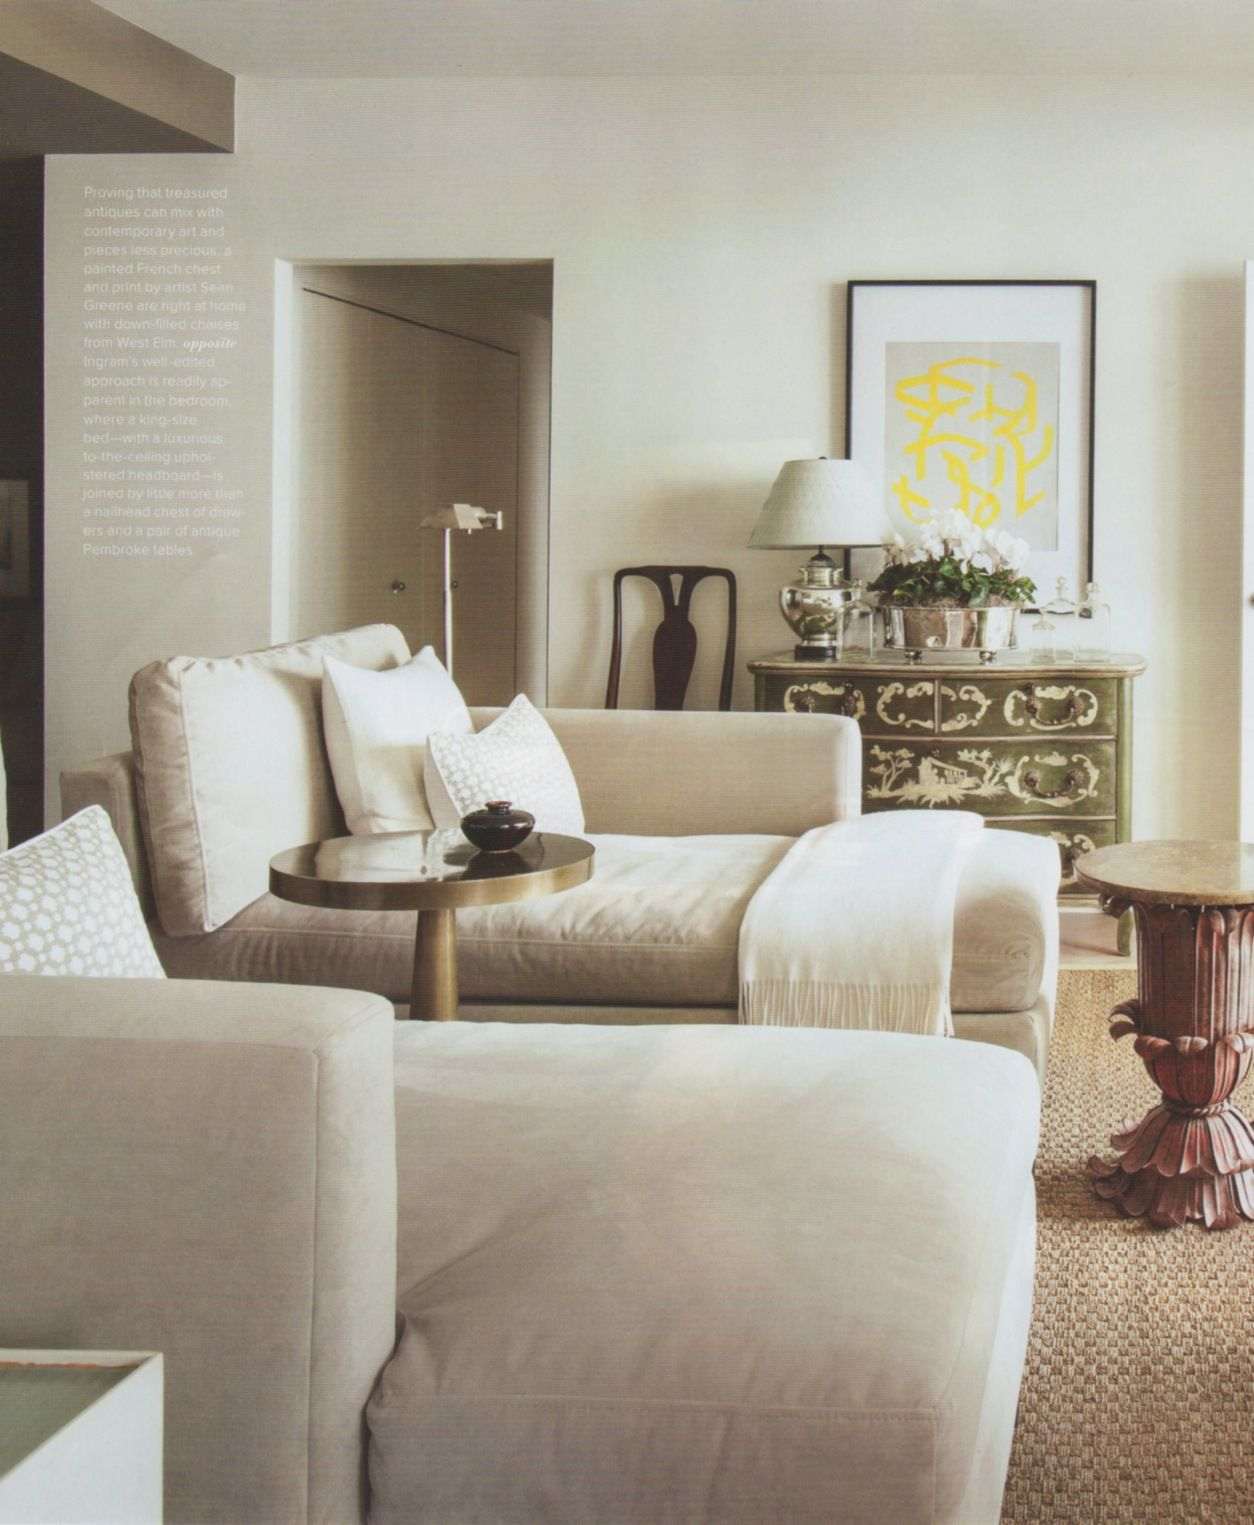 Pin by kristin meredith on living pinterest interiors and bedrooms